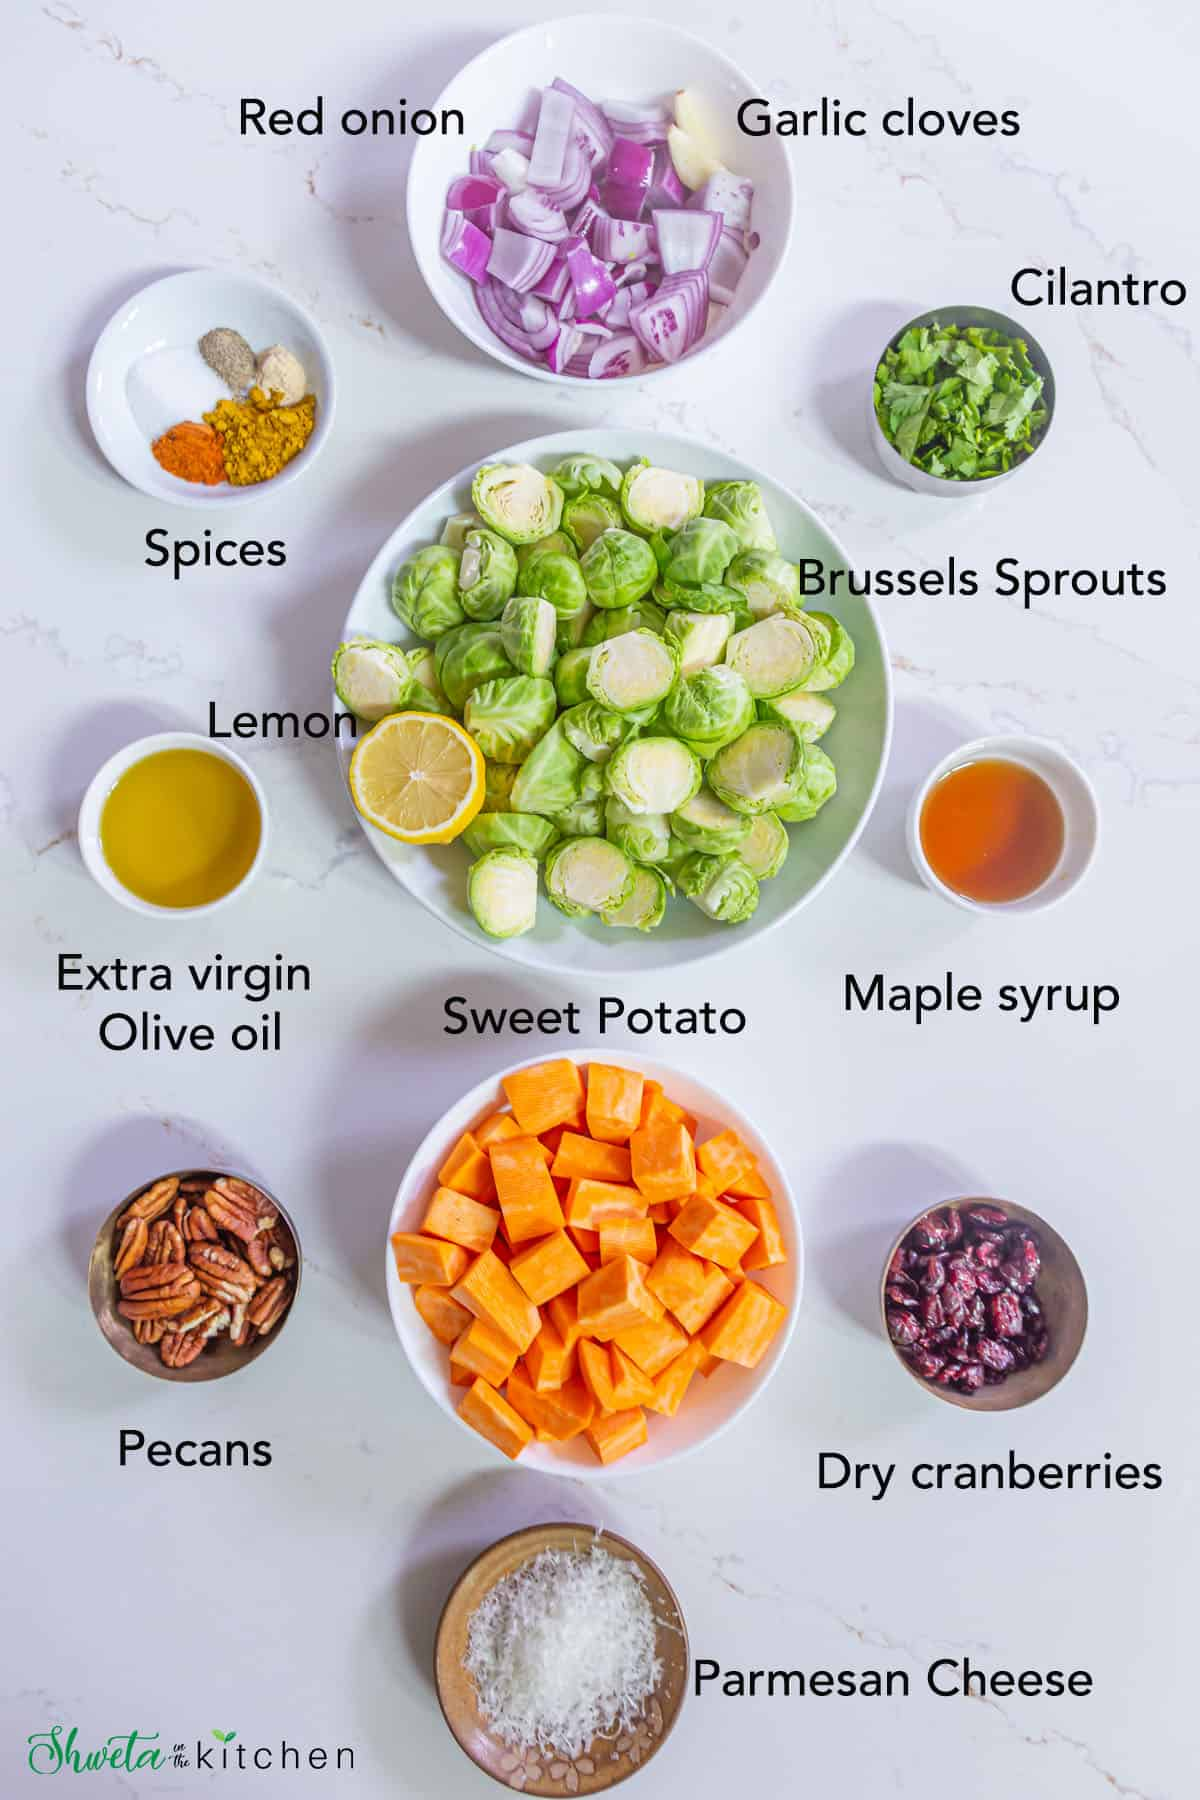 Ingredients for roasted brussels sprouts and sweet potatoes laid out in bowls on white surface